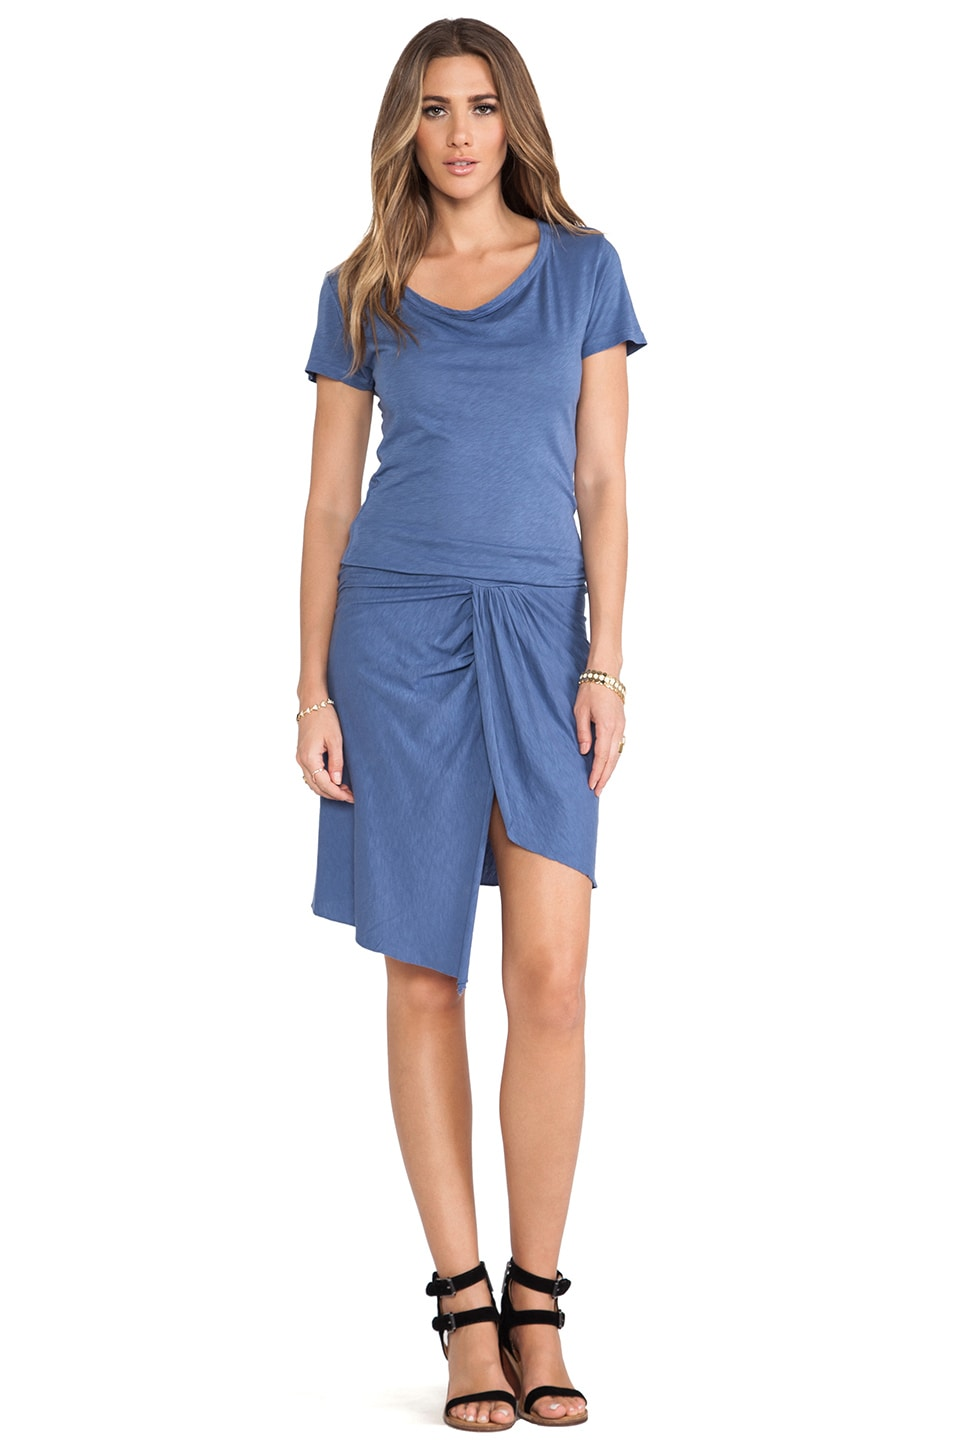 MONROW Slub Cotton Modal Drape Neck Dress in Denim